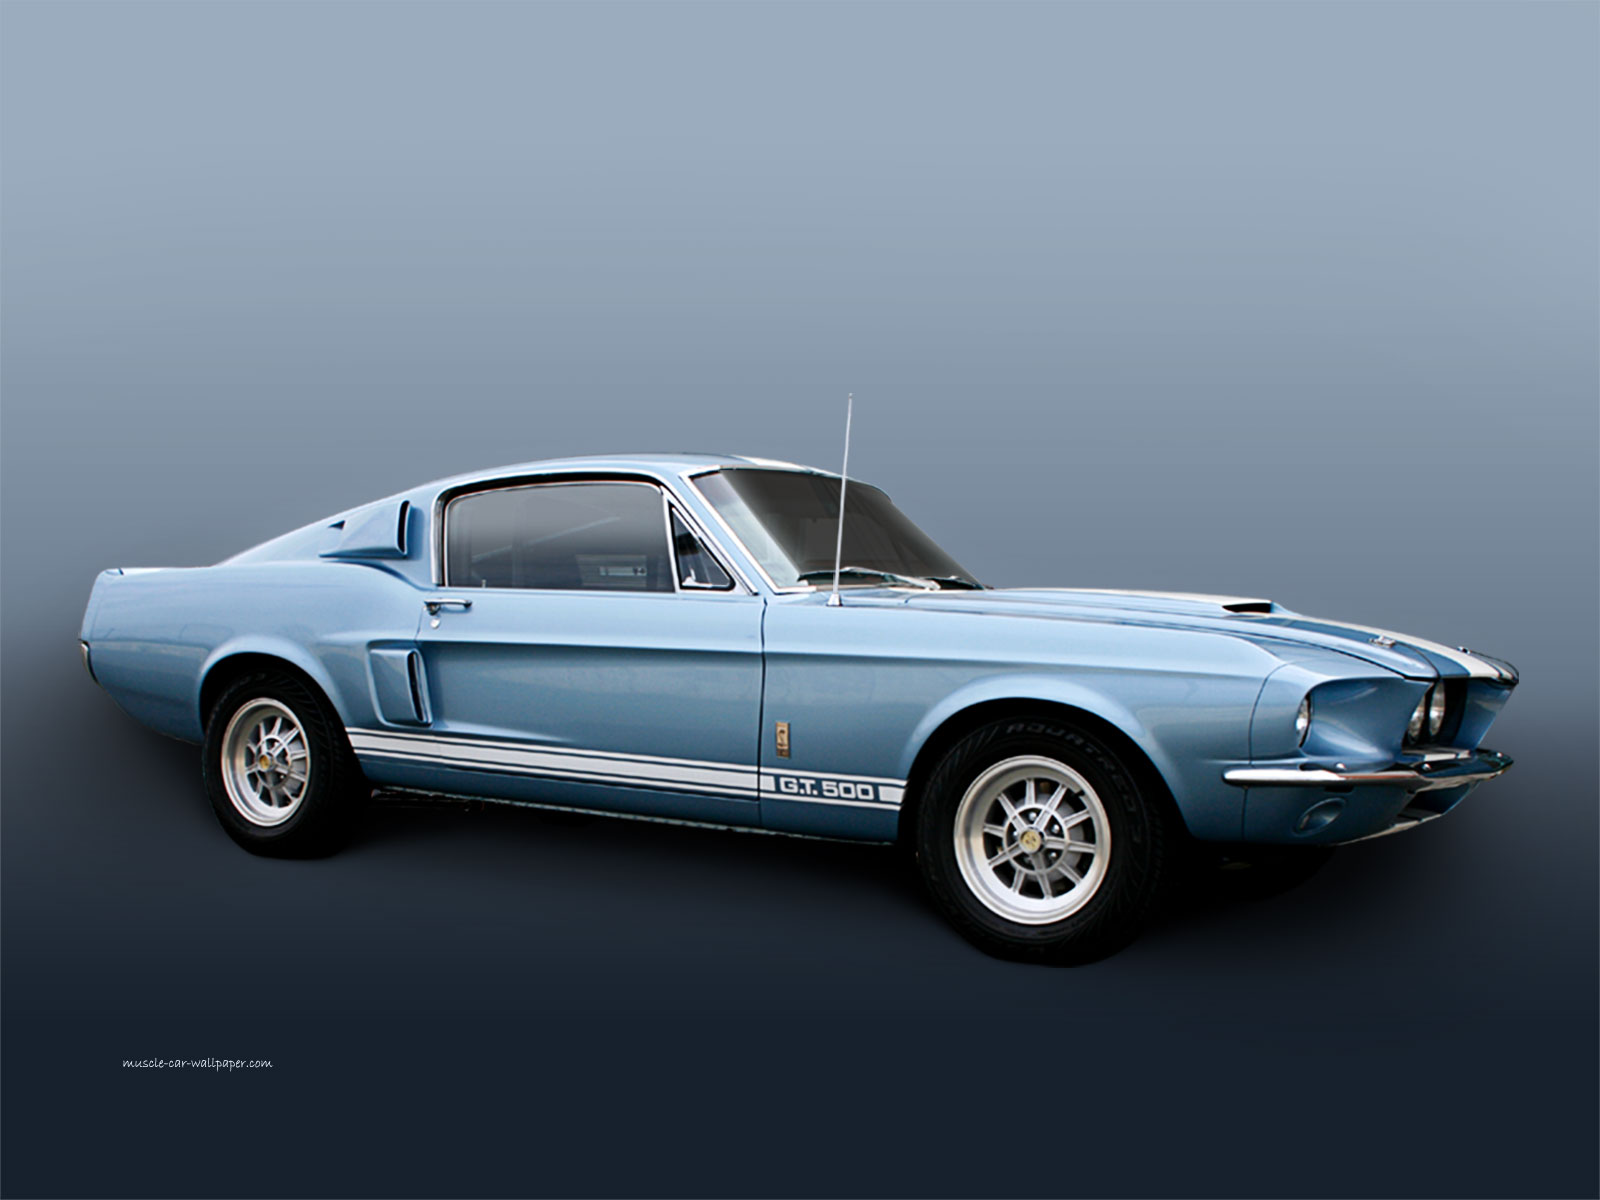 1967 Mustang Shelby GT 500 Muscle Car Wallpaper 1600 06 1600x1200